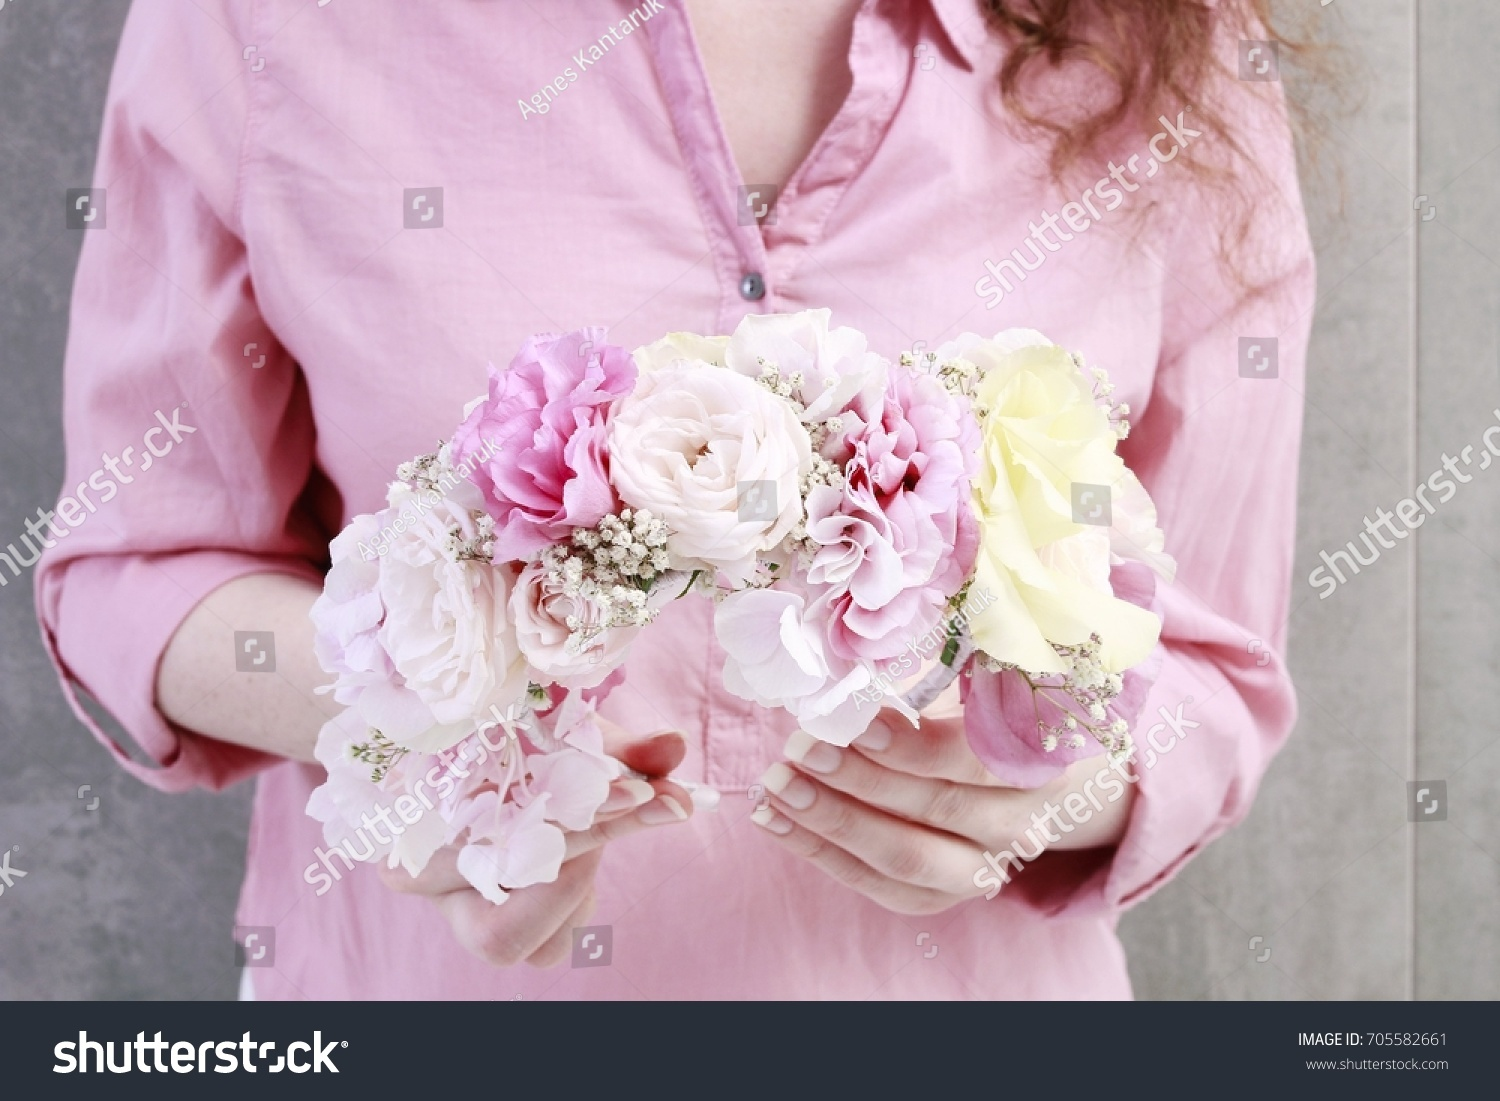 Florist Work How Make Flower Crown Stock Photo Edit Now 705582661